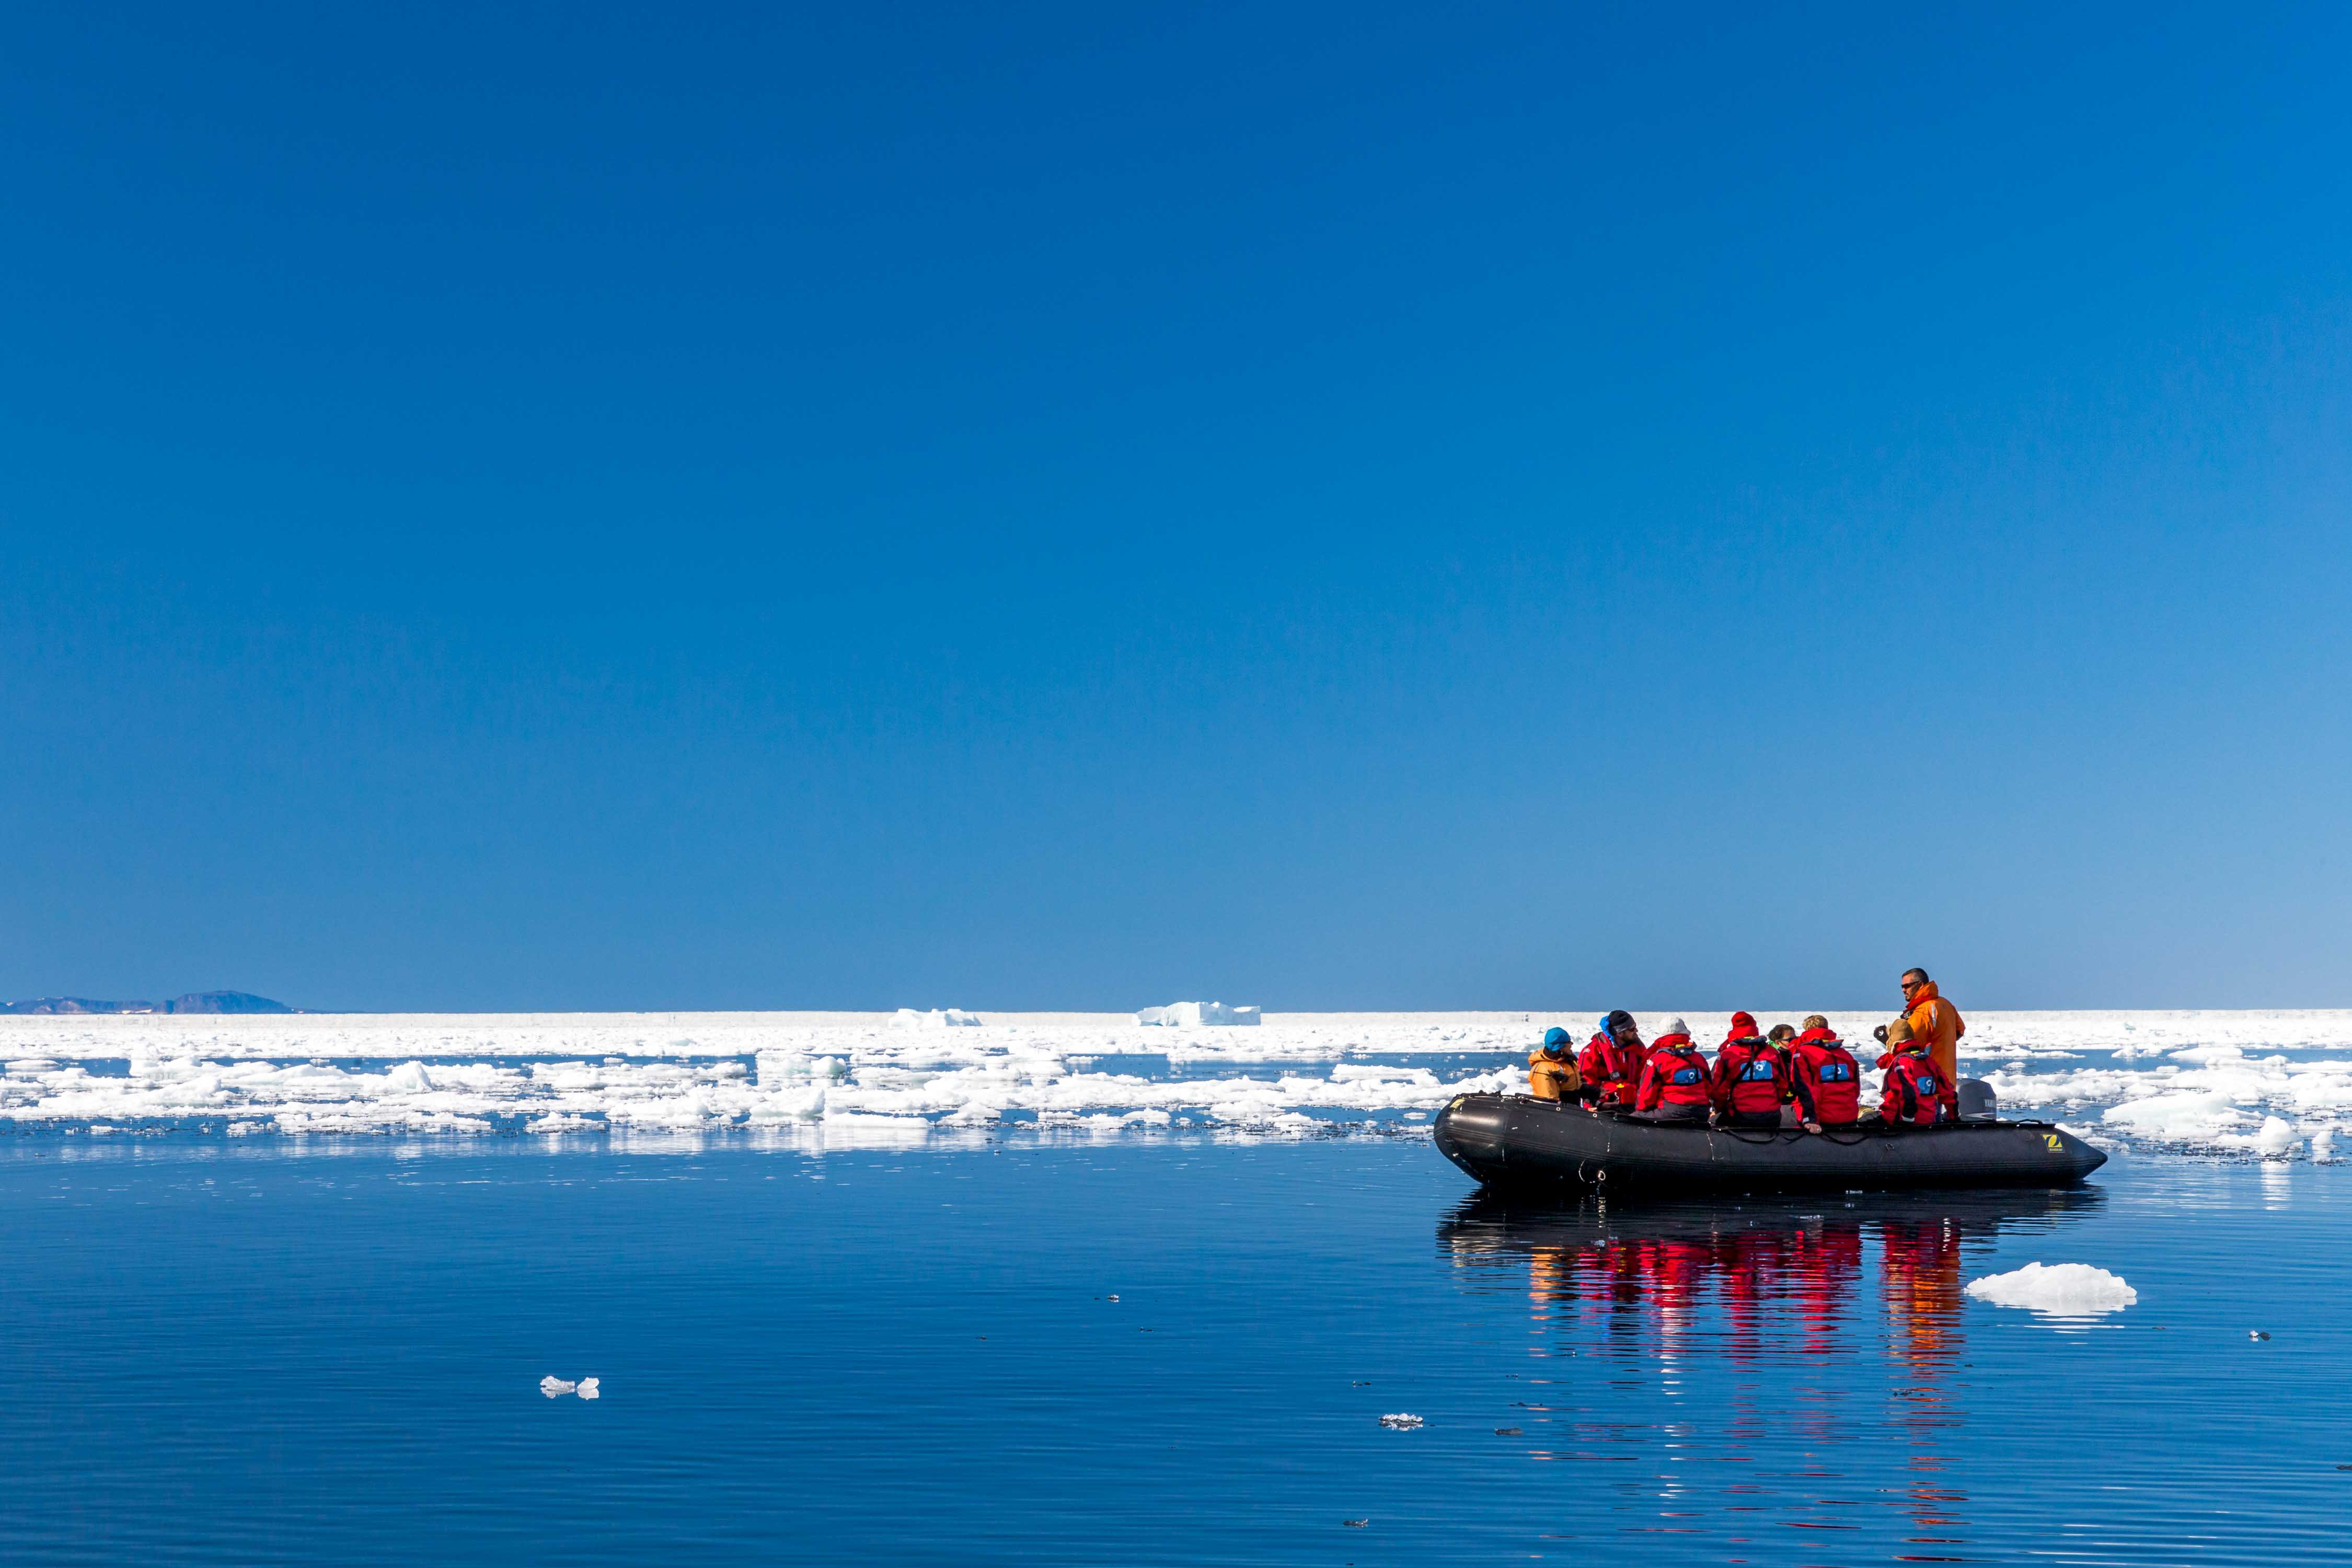 A One Ocean Expeditions excursion ventures out during a Northwest Passage cruise.